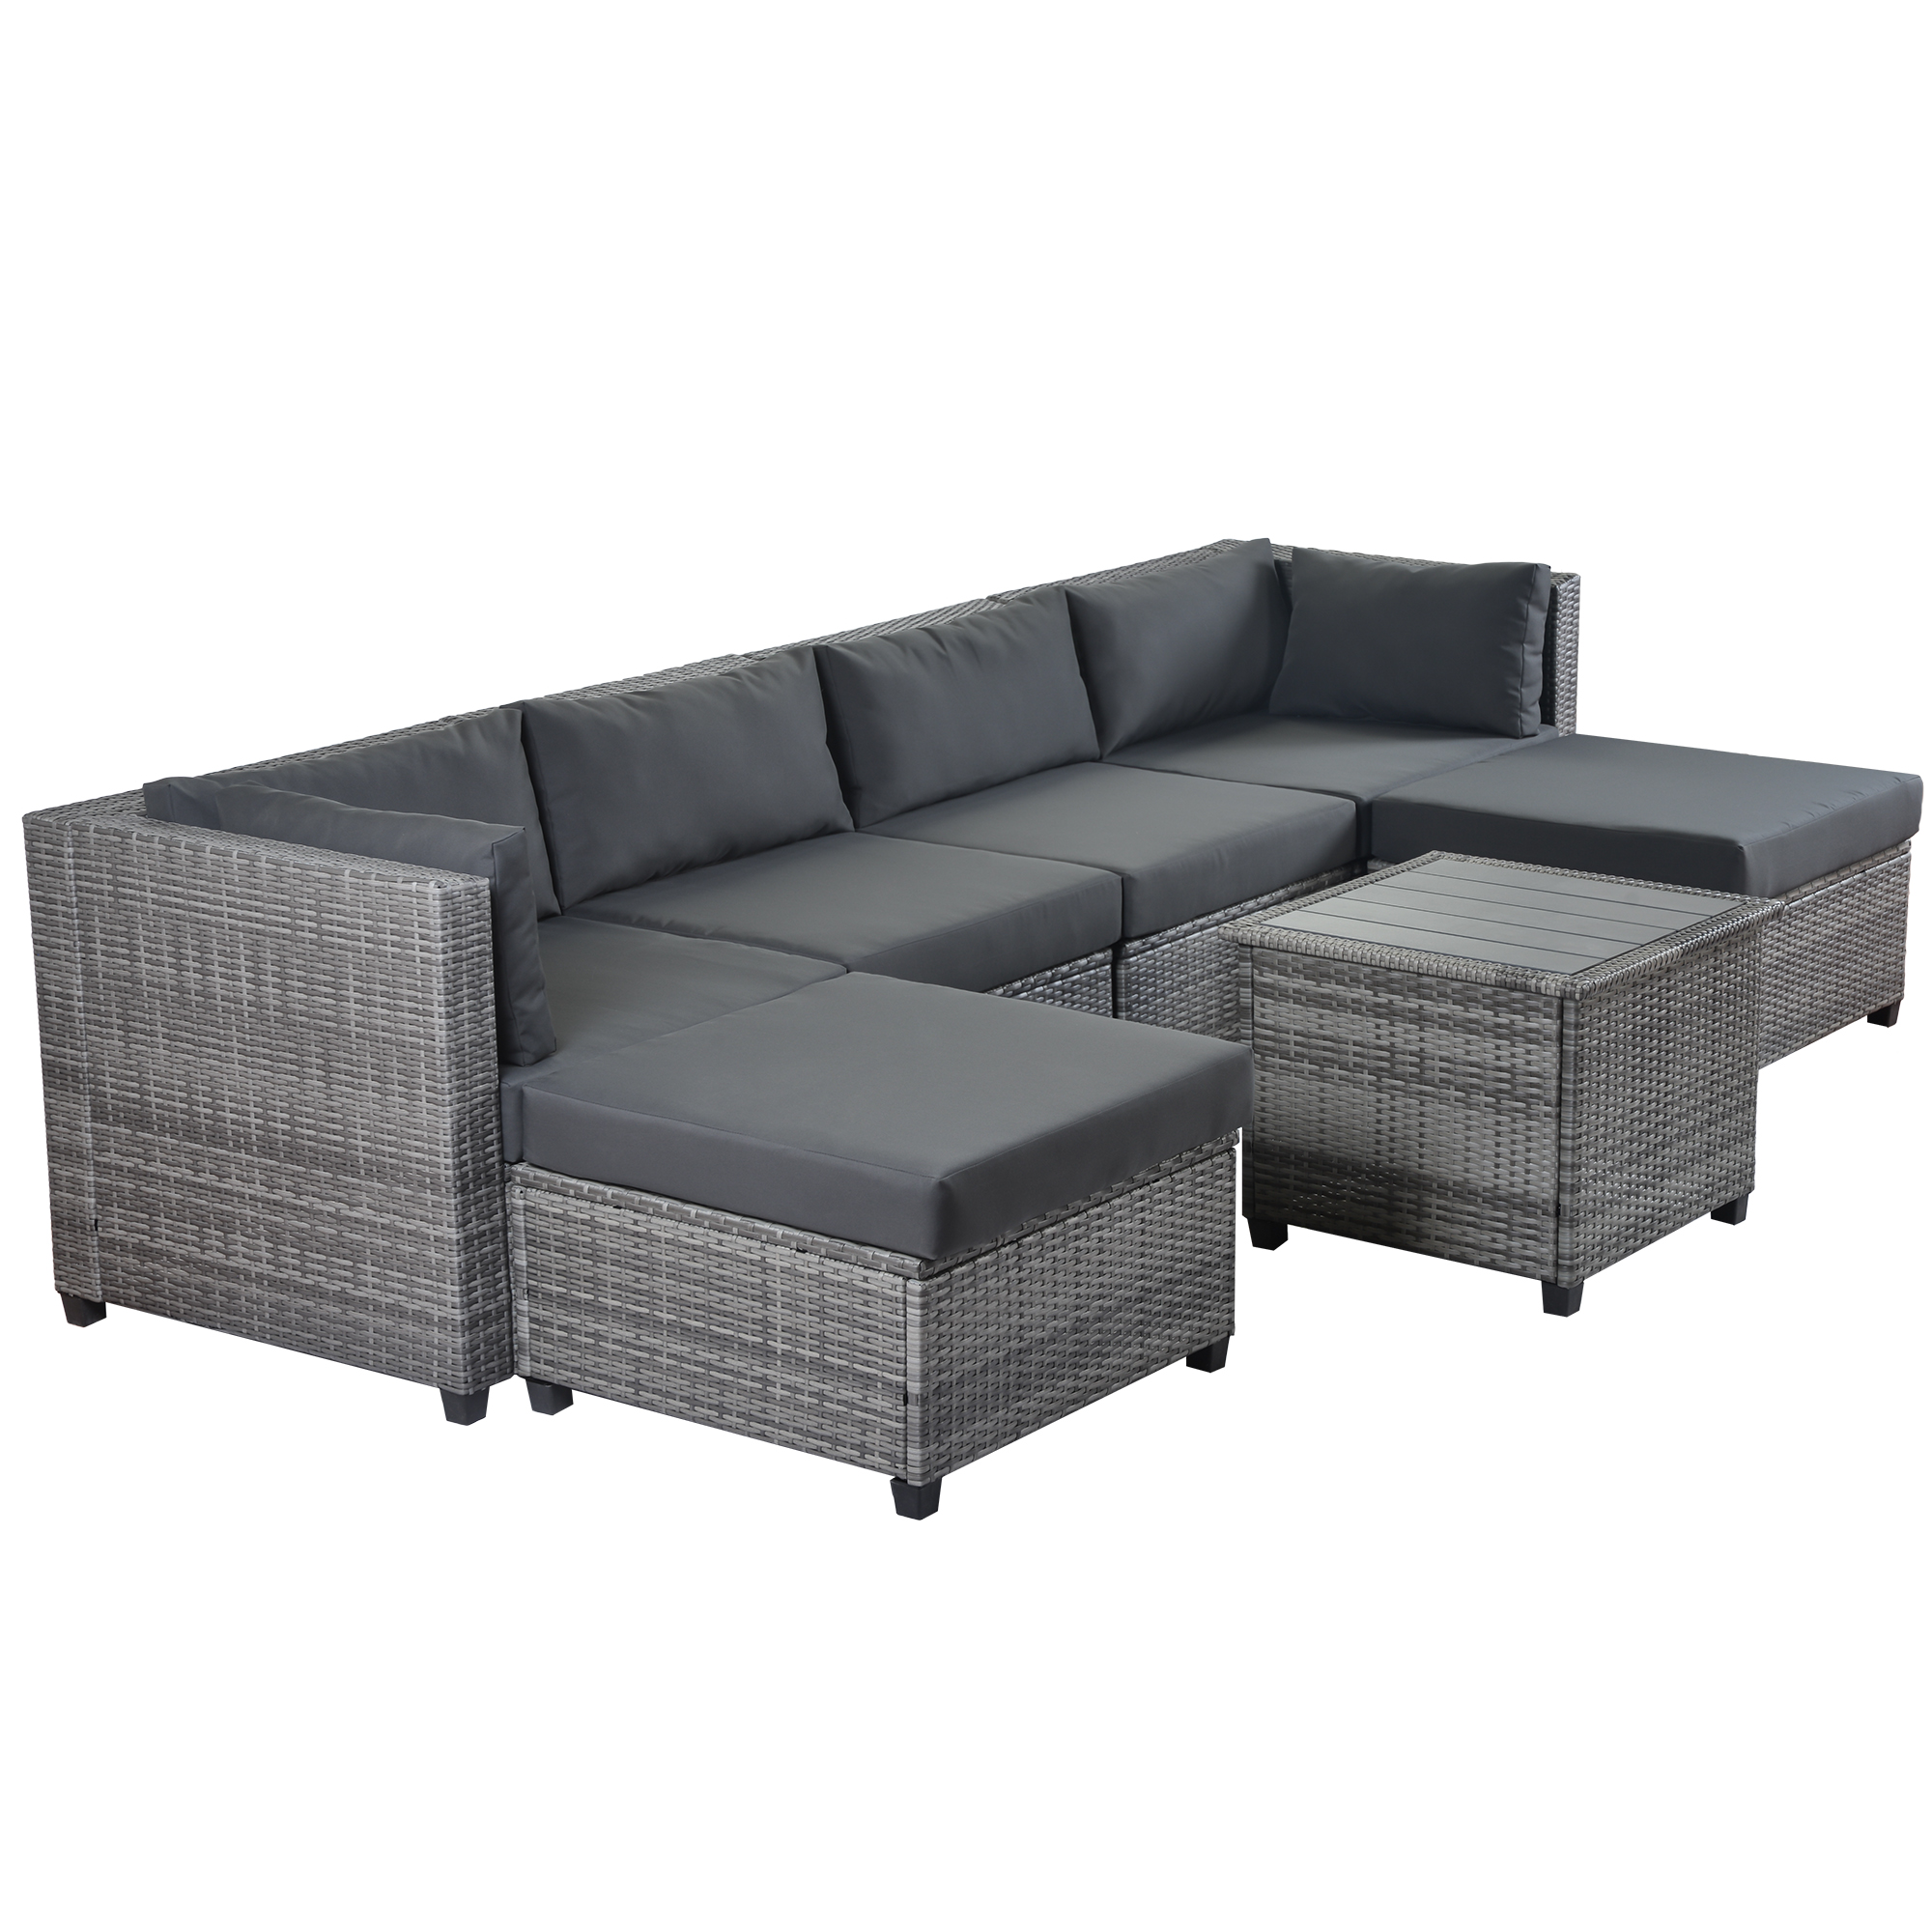 clearance patio sectional conversation sets 7 pieces on walmart bedroom furniture clearance id=75192